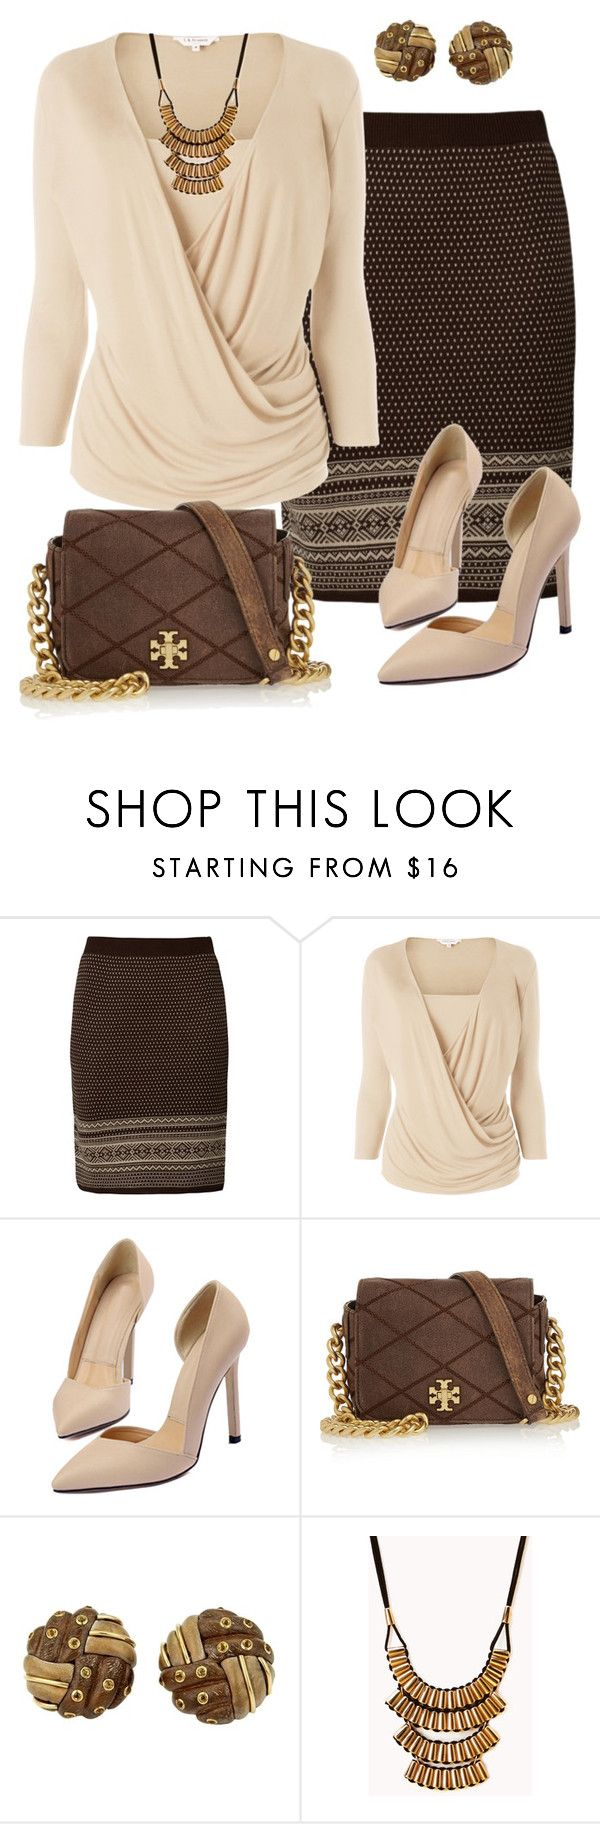 """""""Sin título #1206"""" by marisol-menahem ❤ liked on Polyvore featuring Anna Field, L.K.Bennett, Tory Burch, Trianon and Forever 21"""